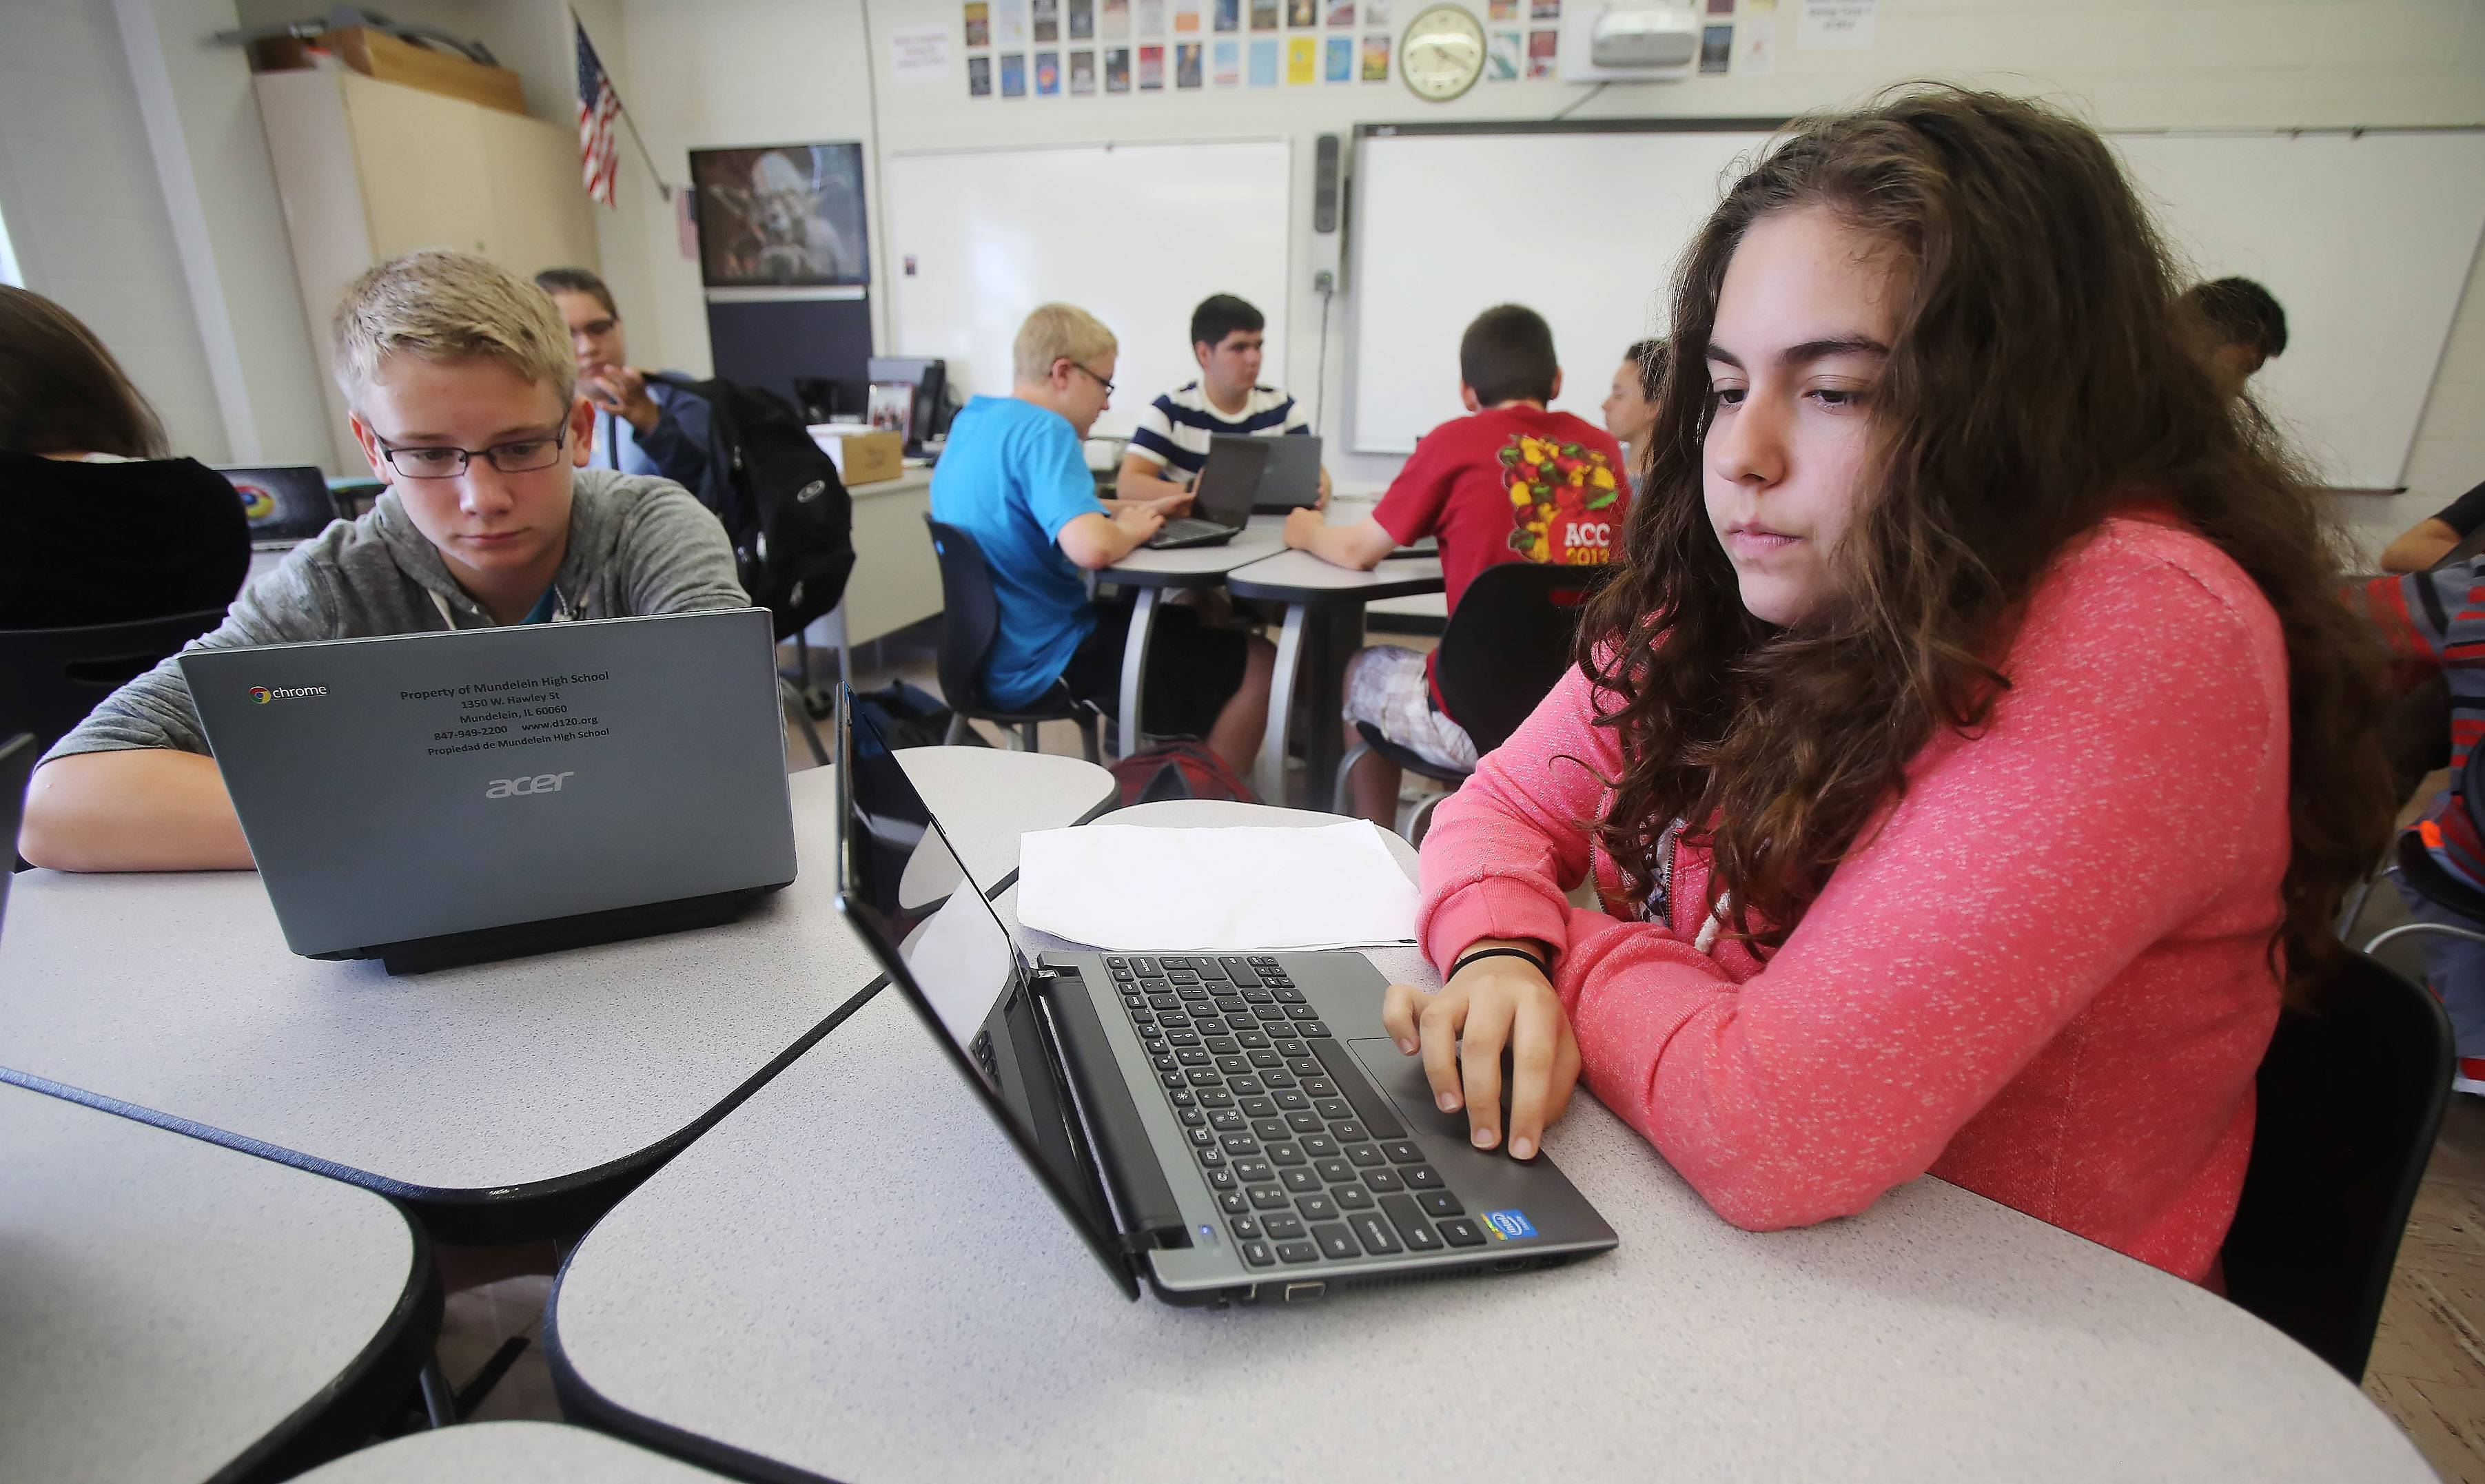 Mundelein High School freshmen Breanna Giametta, right, and Carson Bernett work on their new Chromebooks in Algebra I class on the first day of school Wednesday. The school is giving each student a Chromebook laptop to work with this year as part of a new program.